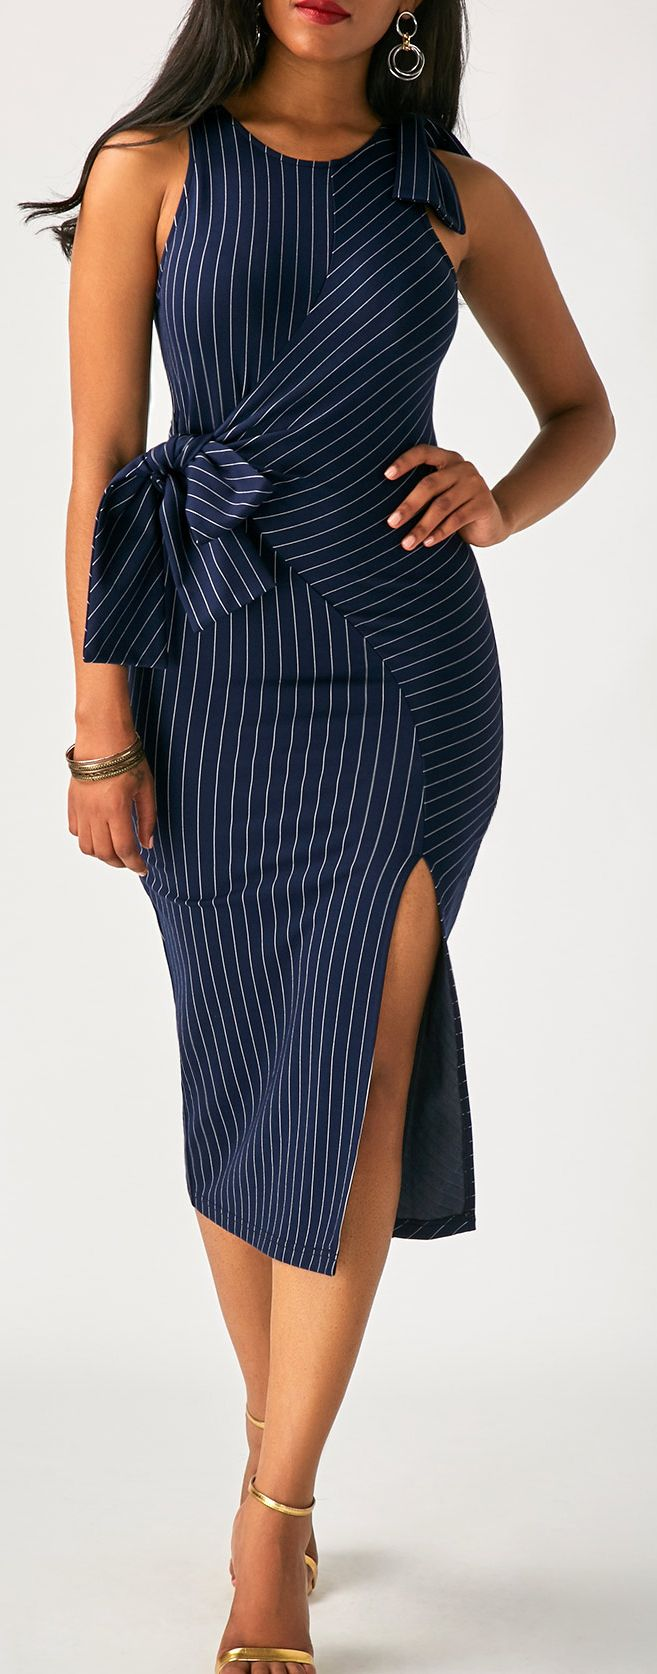 3f772eb673b7 Navy Blue Pinstriped Sleeveless Bow Side Slit Midi Dress | dresses ...